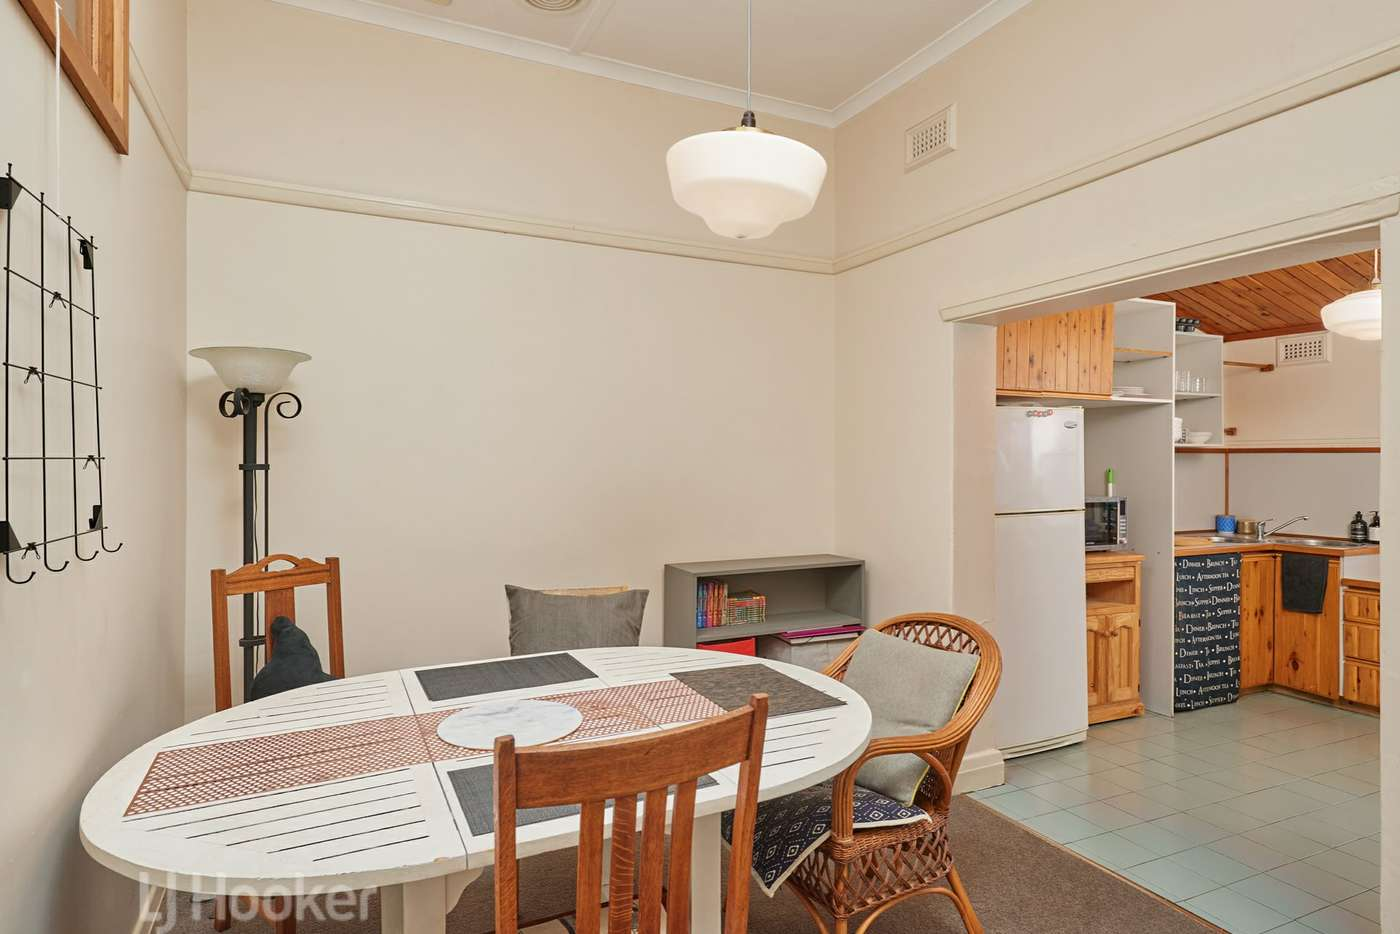 Fifth view of Homely house listing, 9 Marns Street, Wagga Wagga NSW 2650